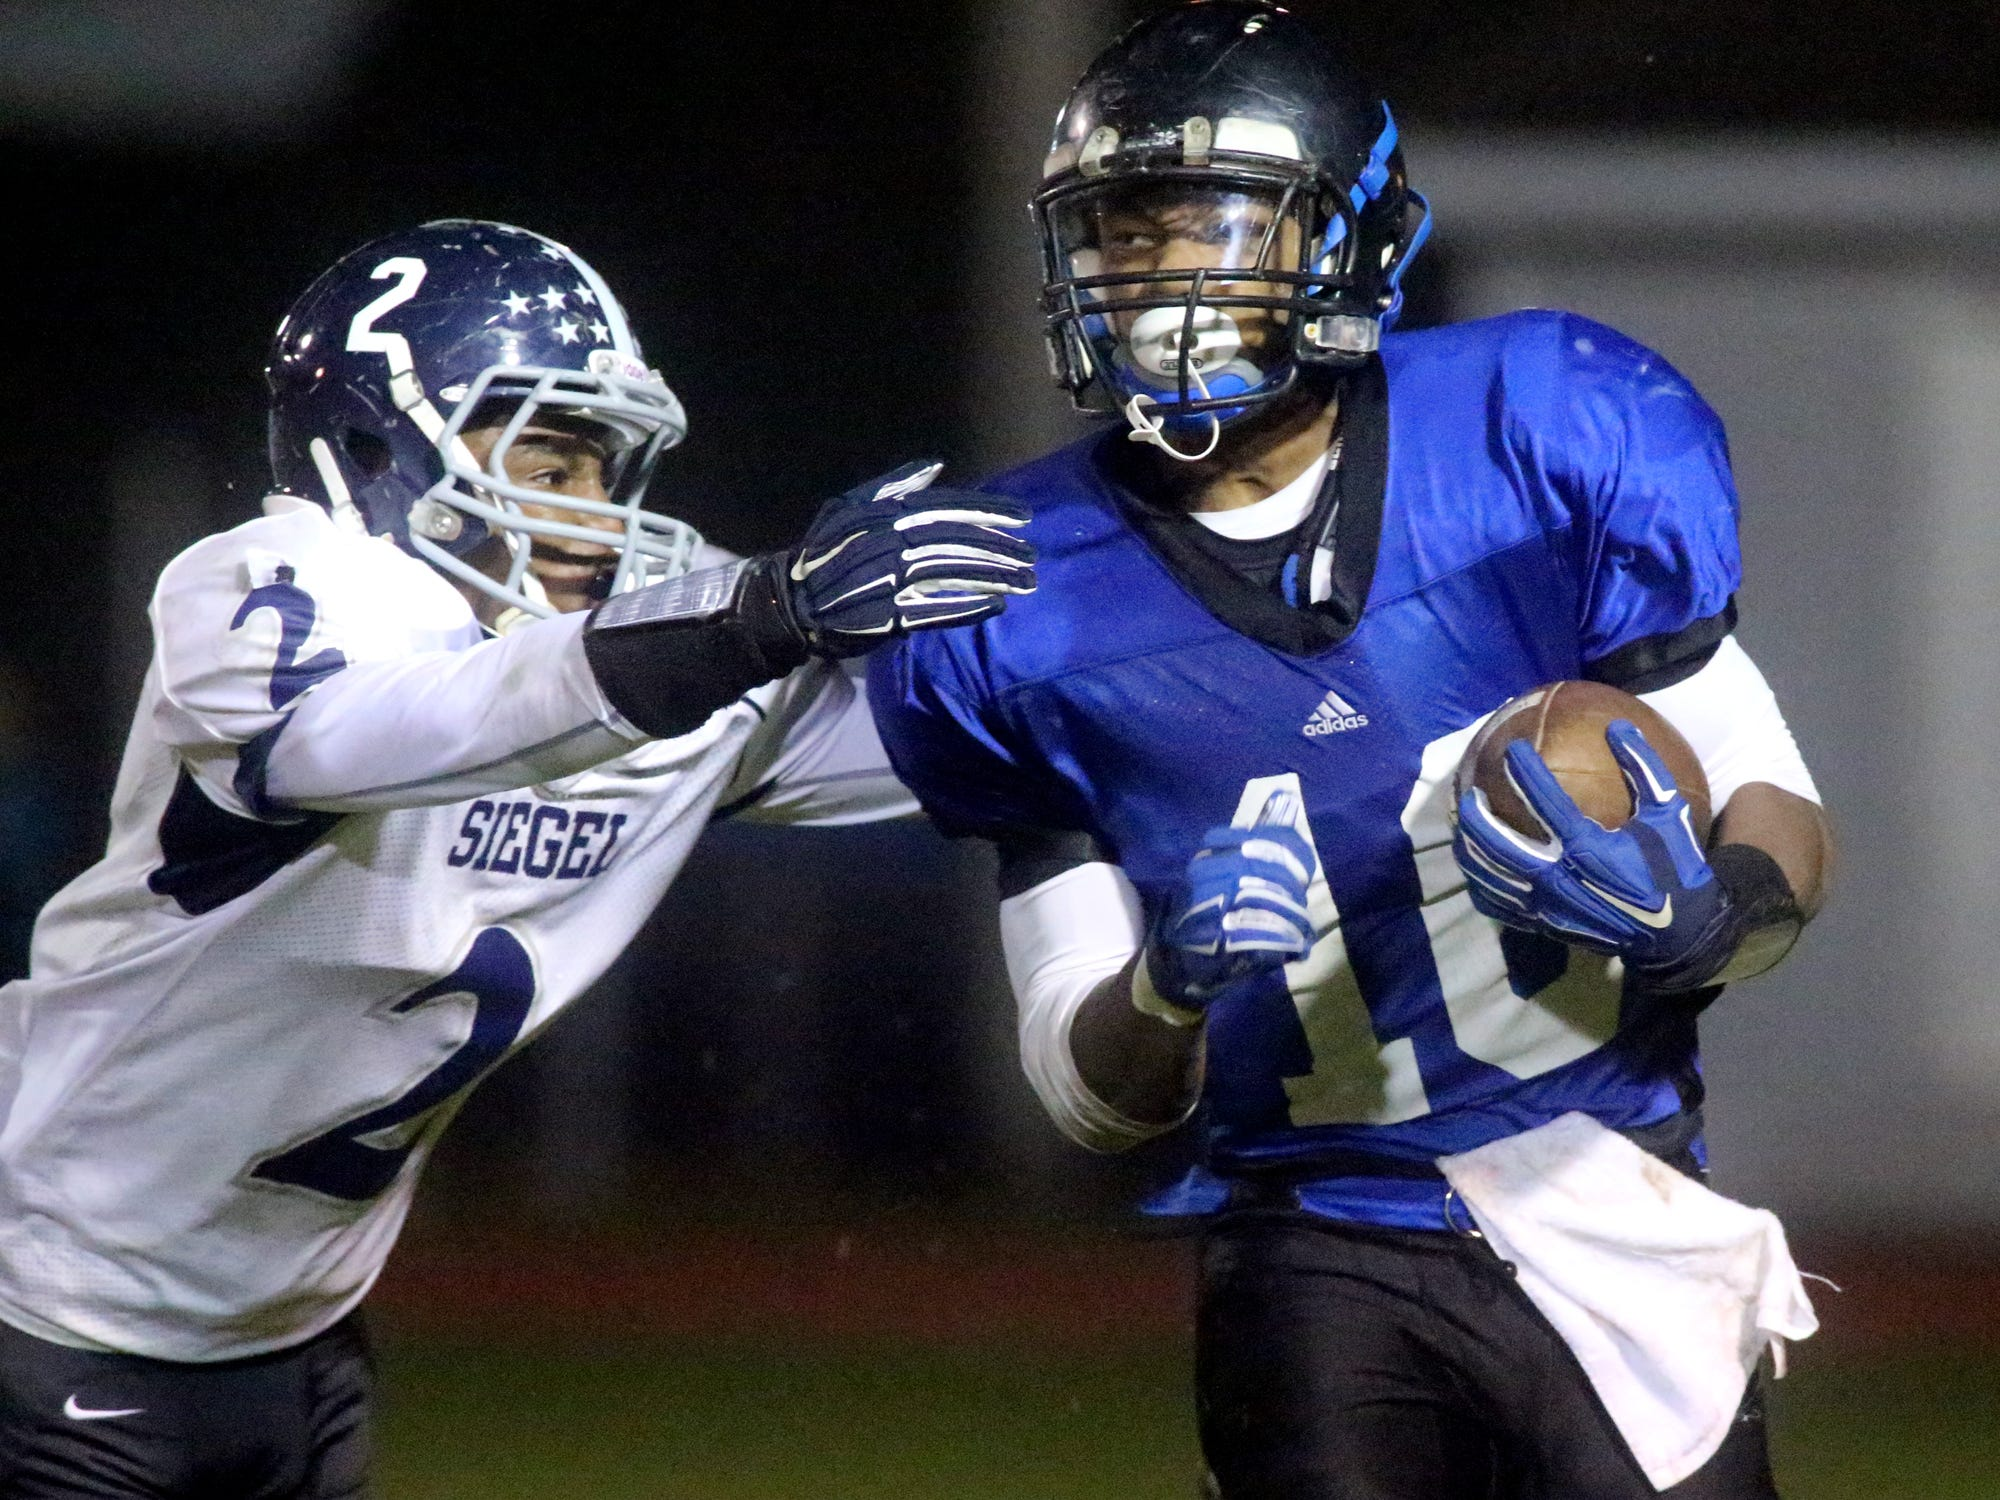 La Vergne's Roshea Grays runs the ball as Siegel's Marcus Wilson moves in for the tackle in the second quarter of the game at La Vergne, on Thursday Oct. 30, 2014.